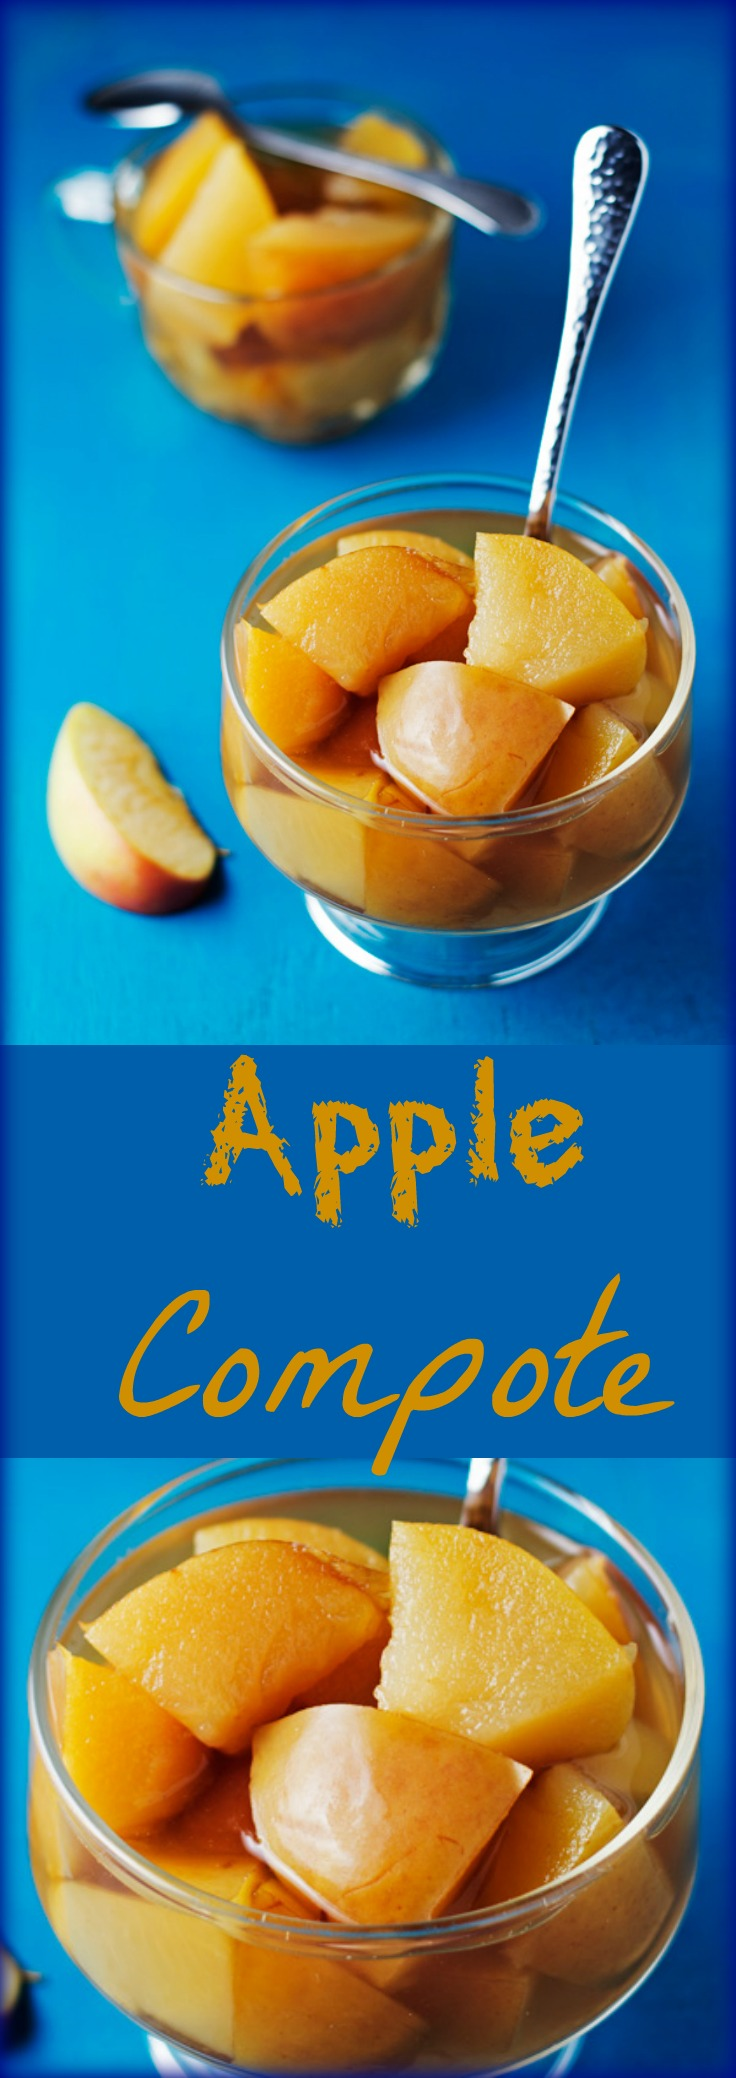 Apple compote or stewed apples take about 35-min. They're a healthier snack option for kids, as well a great way to finish off a heavy meal.